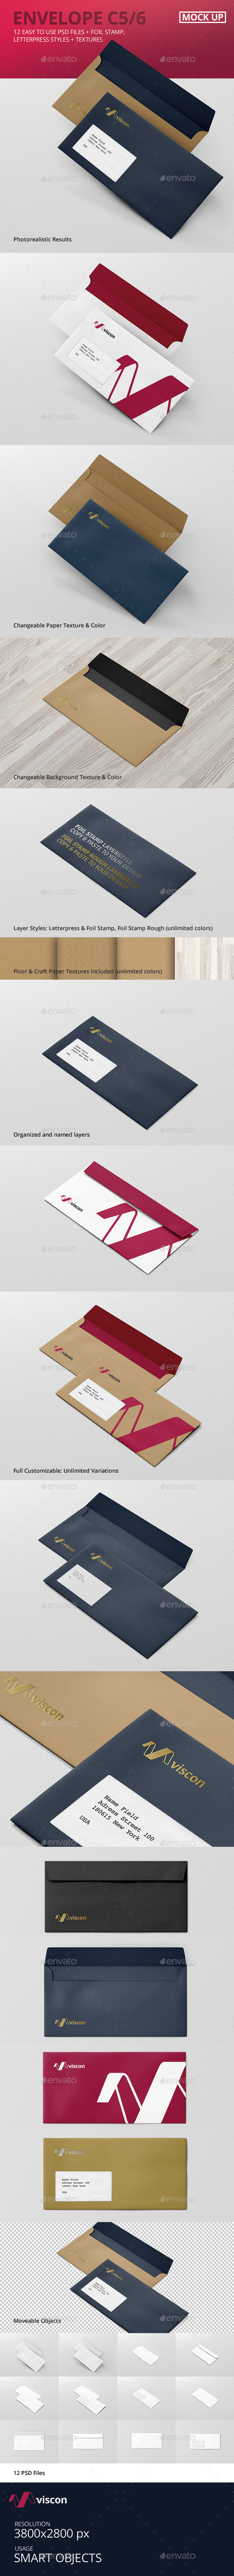 Envelope C5 / 6 Mock-Up - Stationery Print